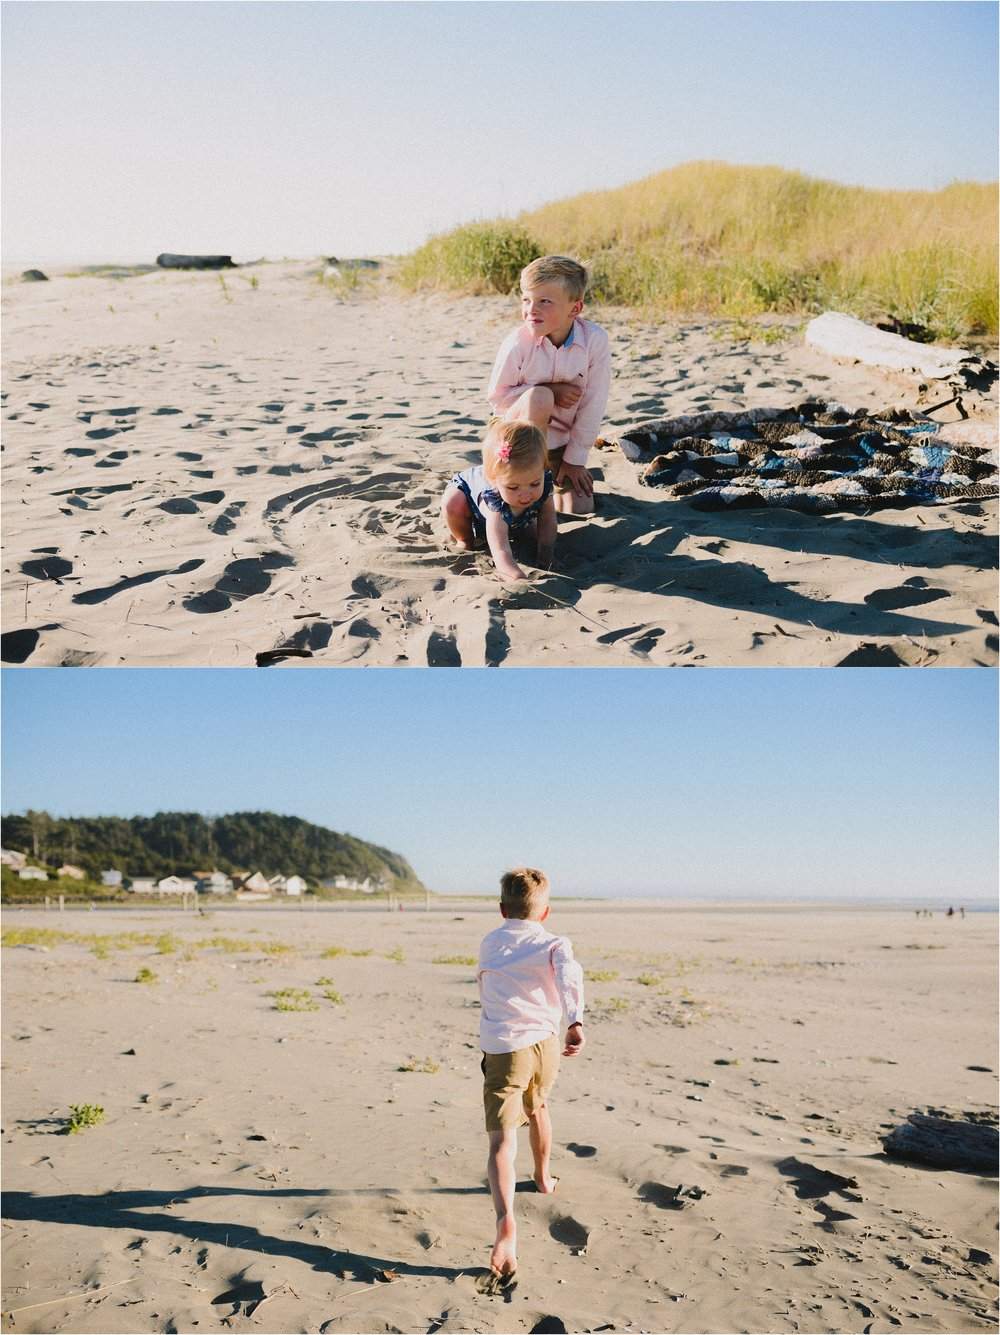 pacific-beach-washington-family-session-jannicka-mayte-anchorage-alaska-family-photographer_0008.jpg